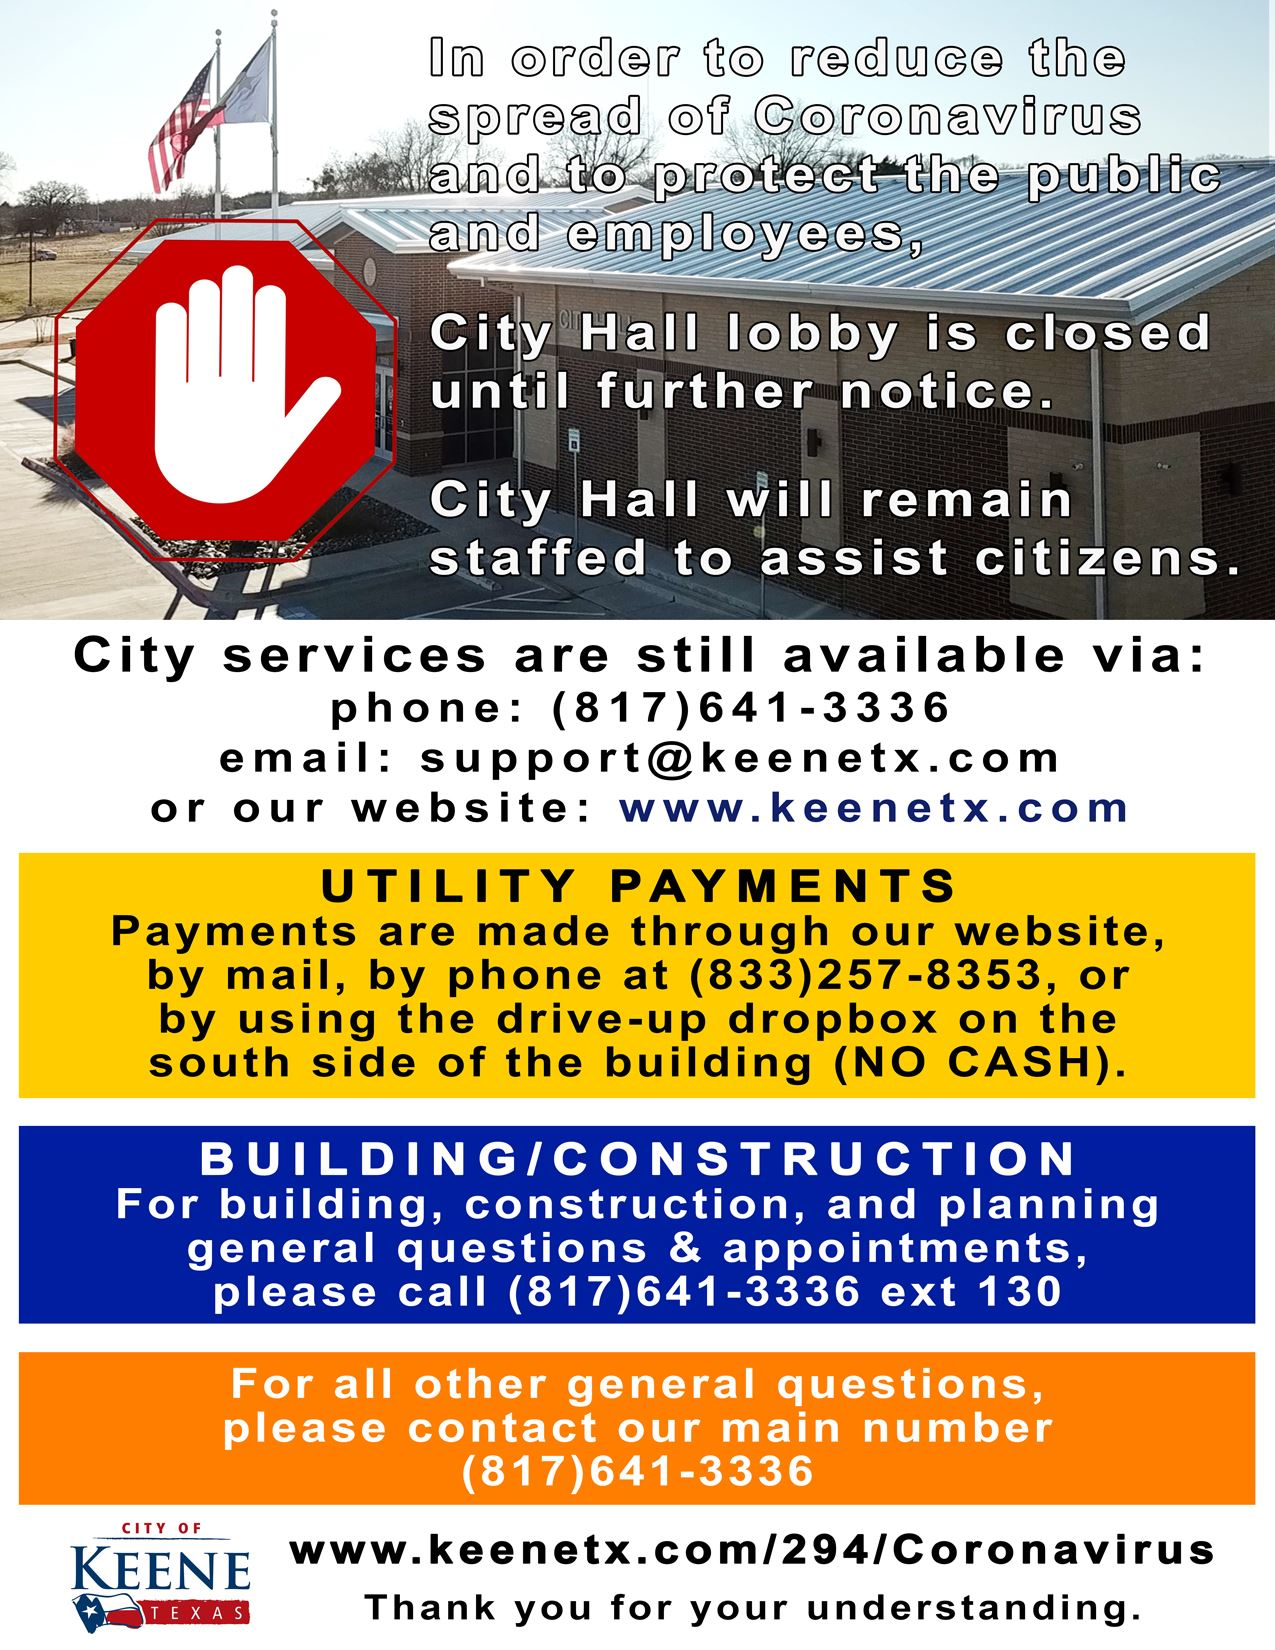 City-Hall-Lobby-Closed